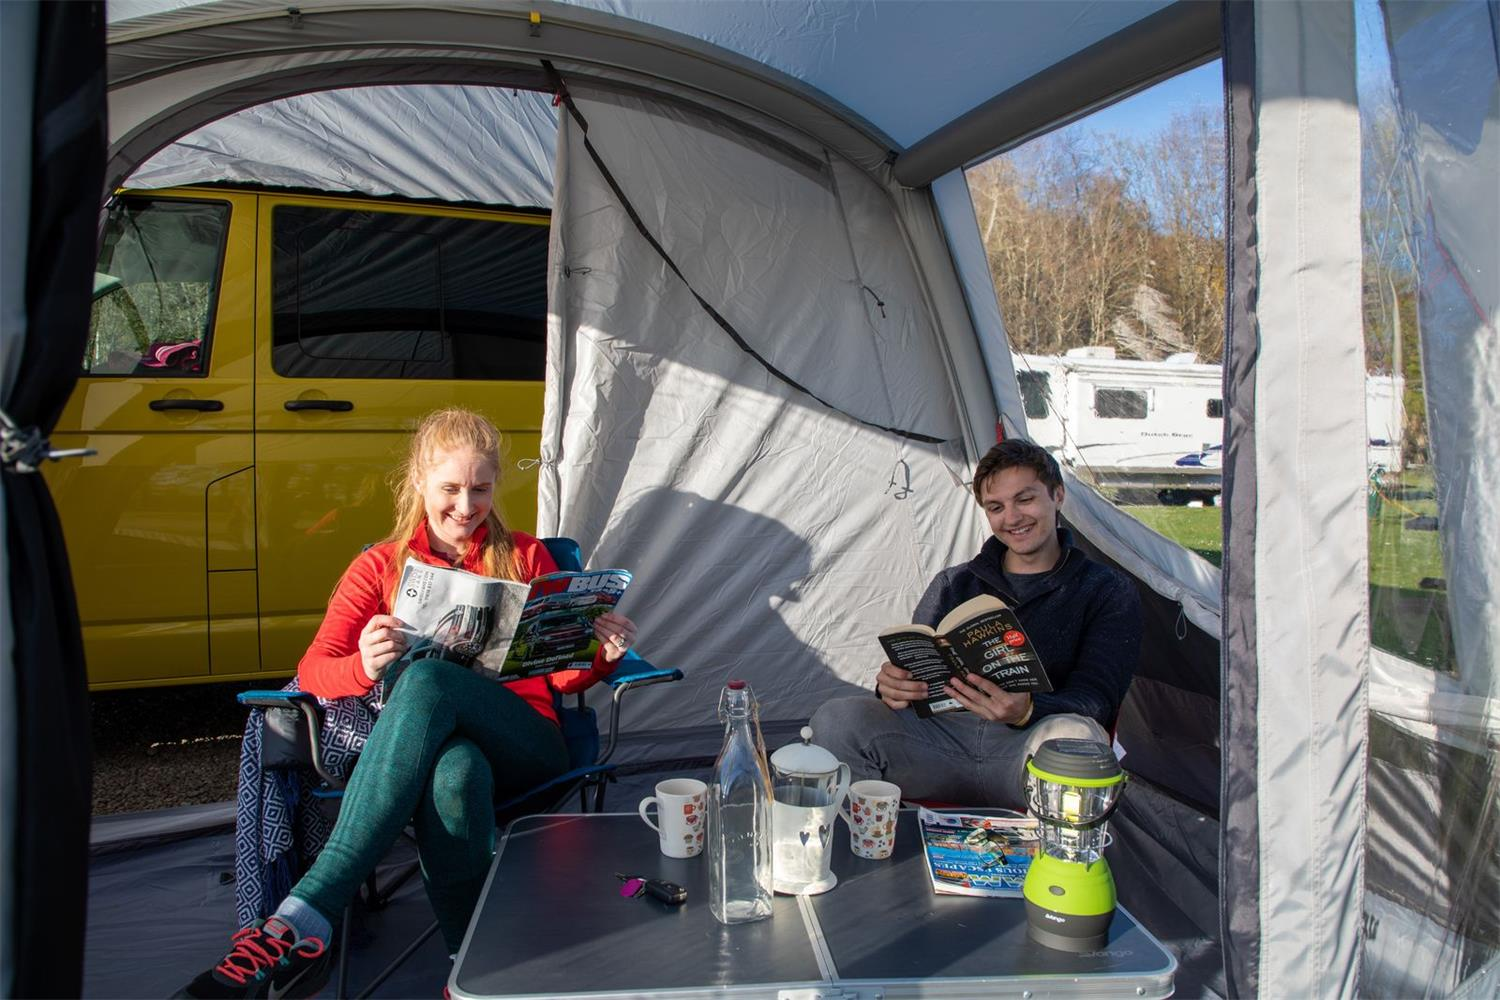 Relax and watch the hours go by in the Vango Tolga VW camper awning.